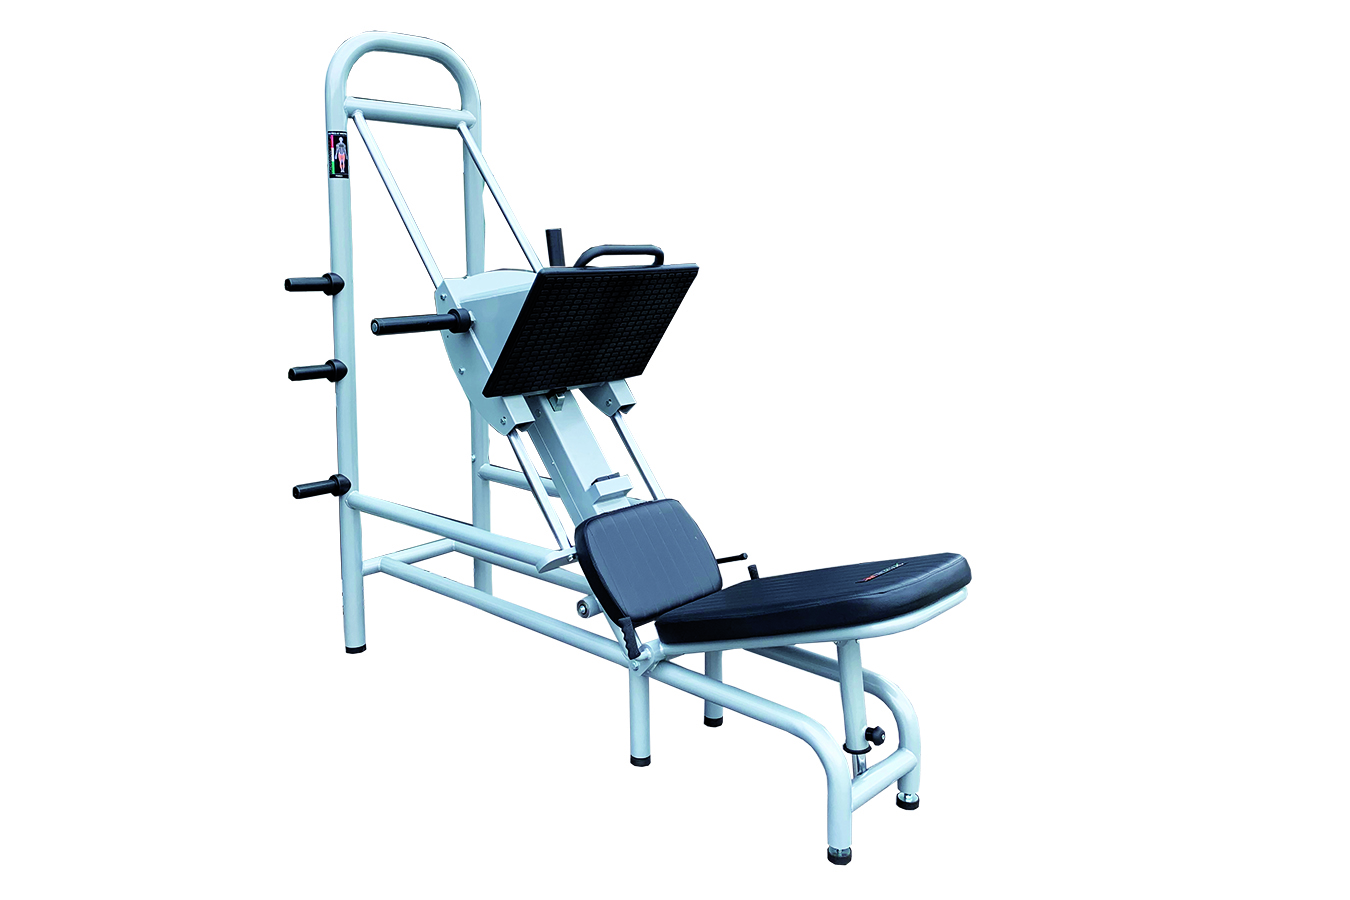 45° Leg Press Machine Crossbowline